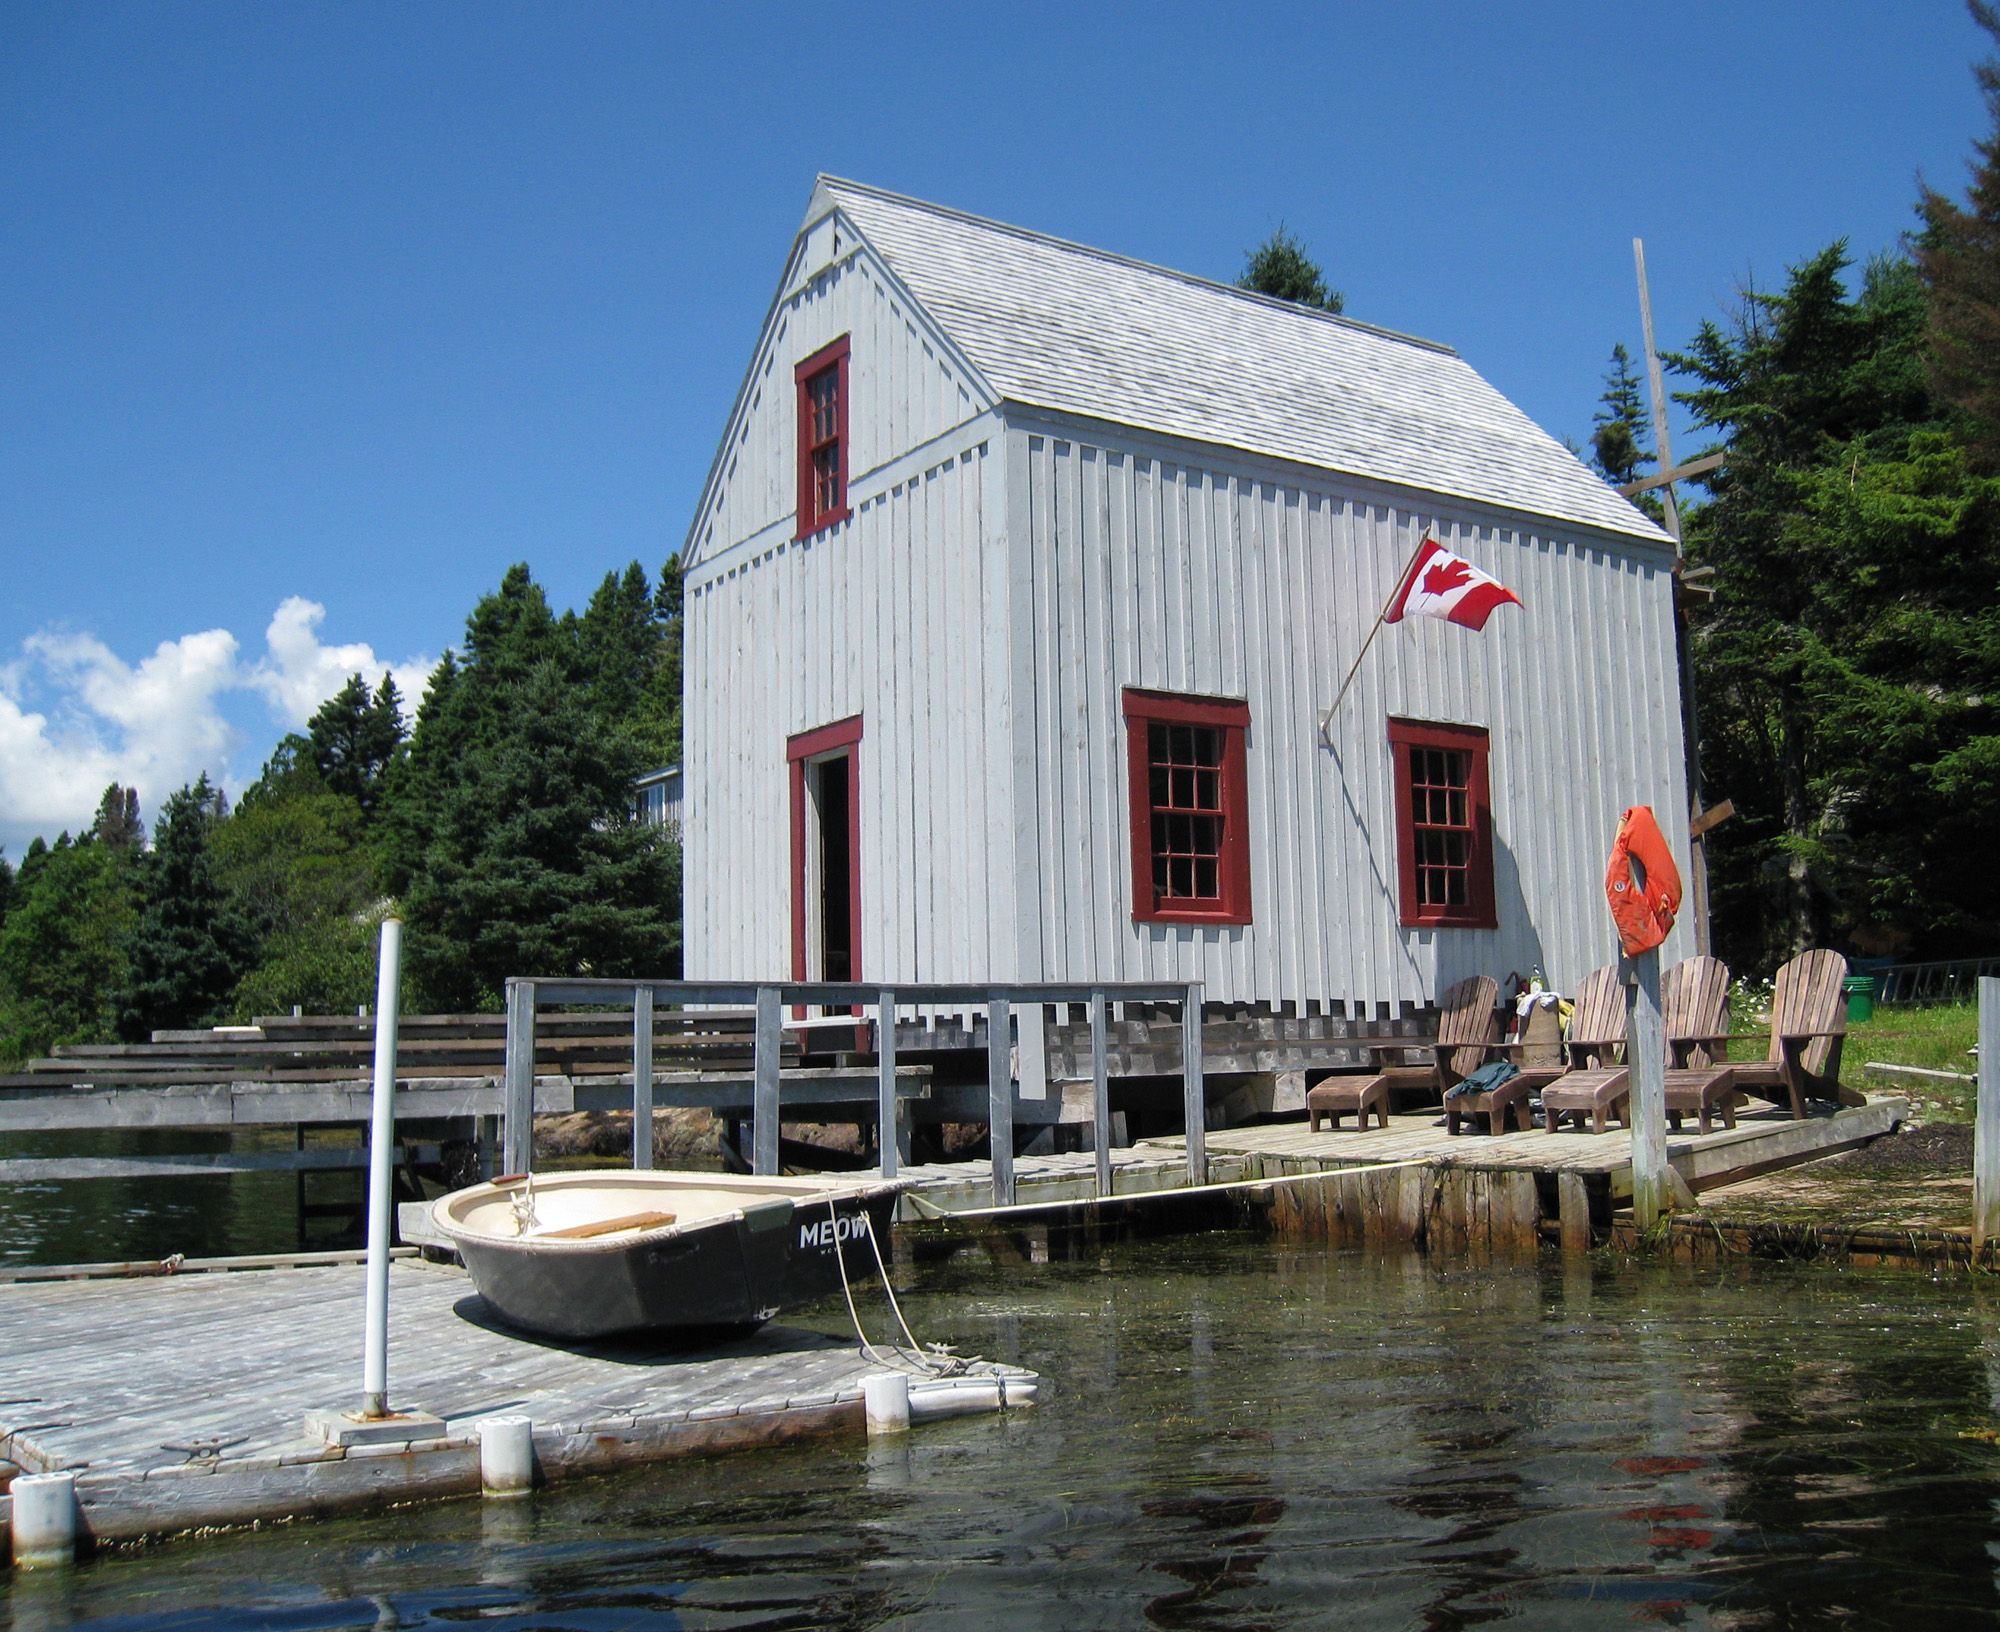 Dockside Woodcraft and Mary's Studio